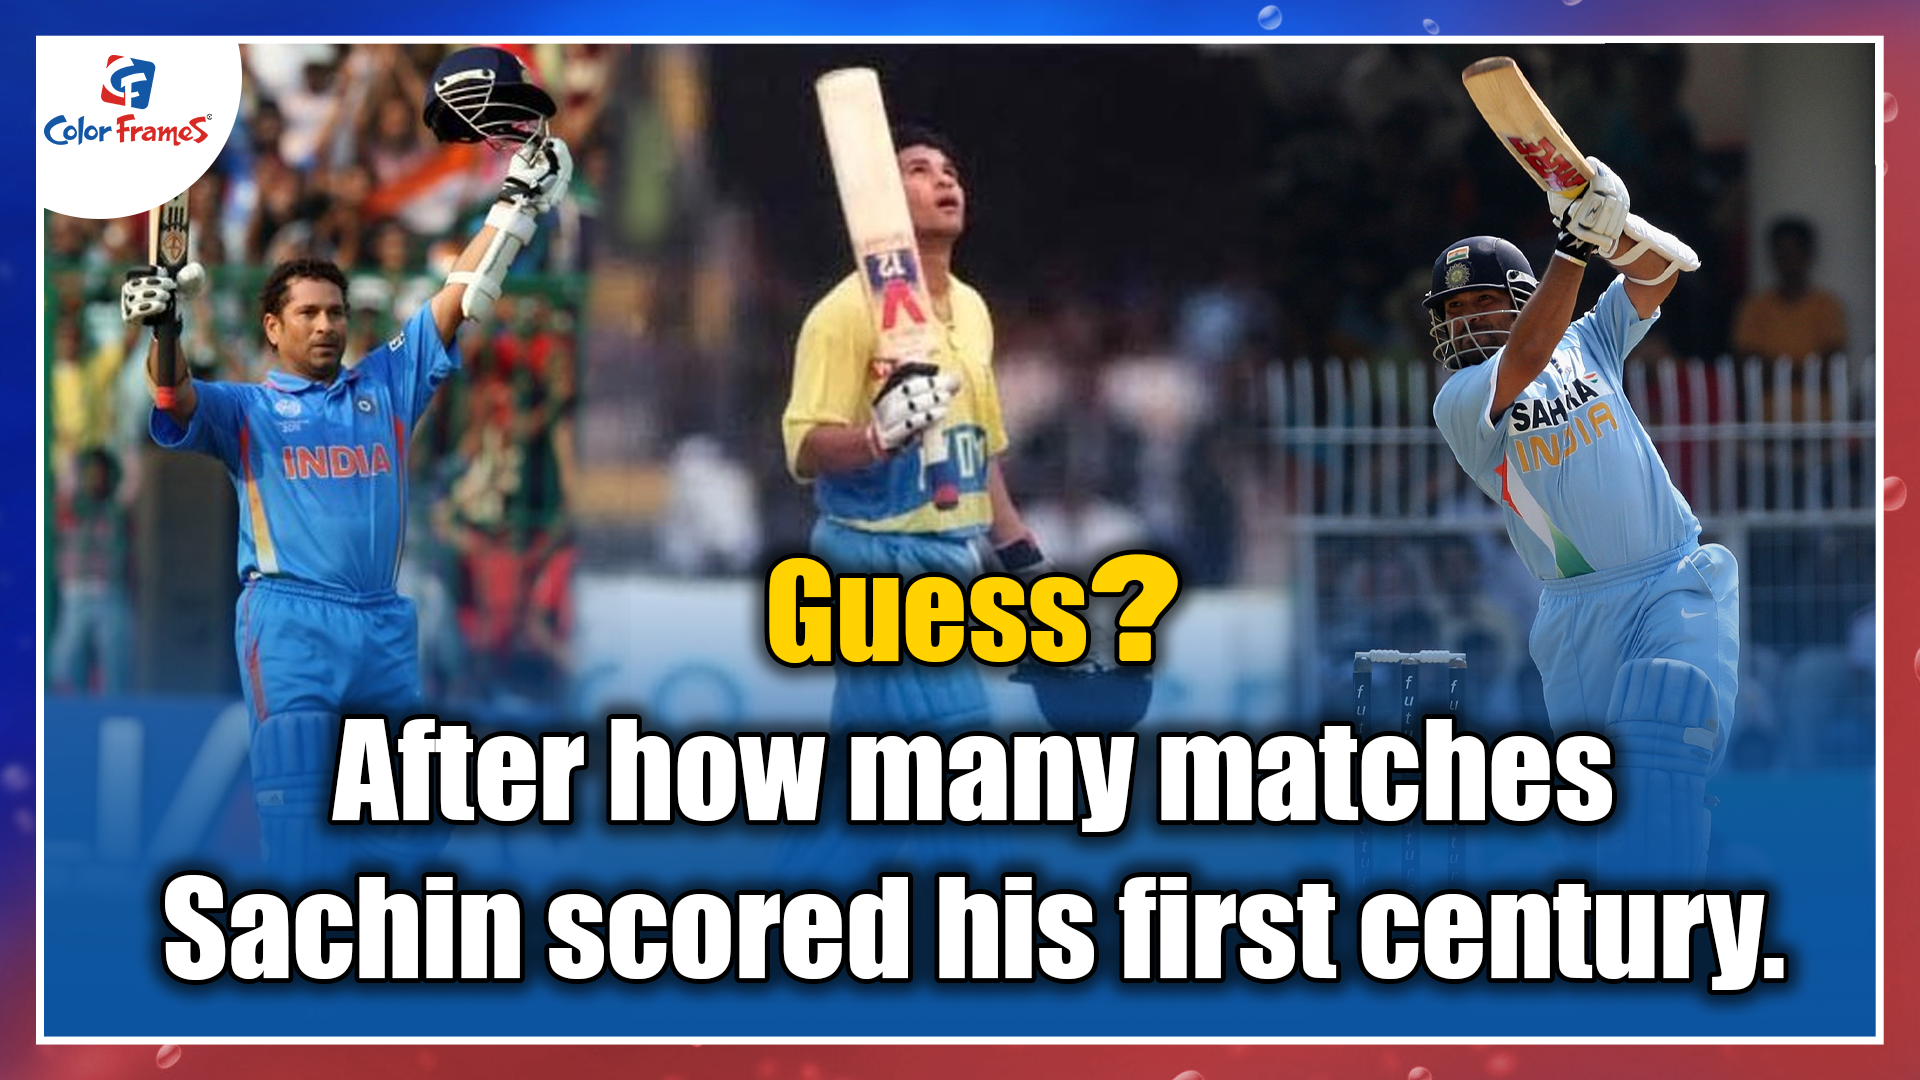 Guess? After how many matches Sachin scored his first century.